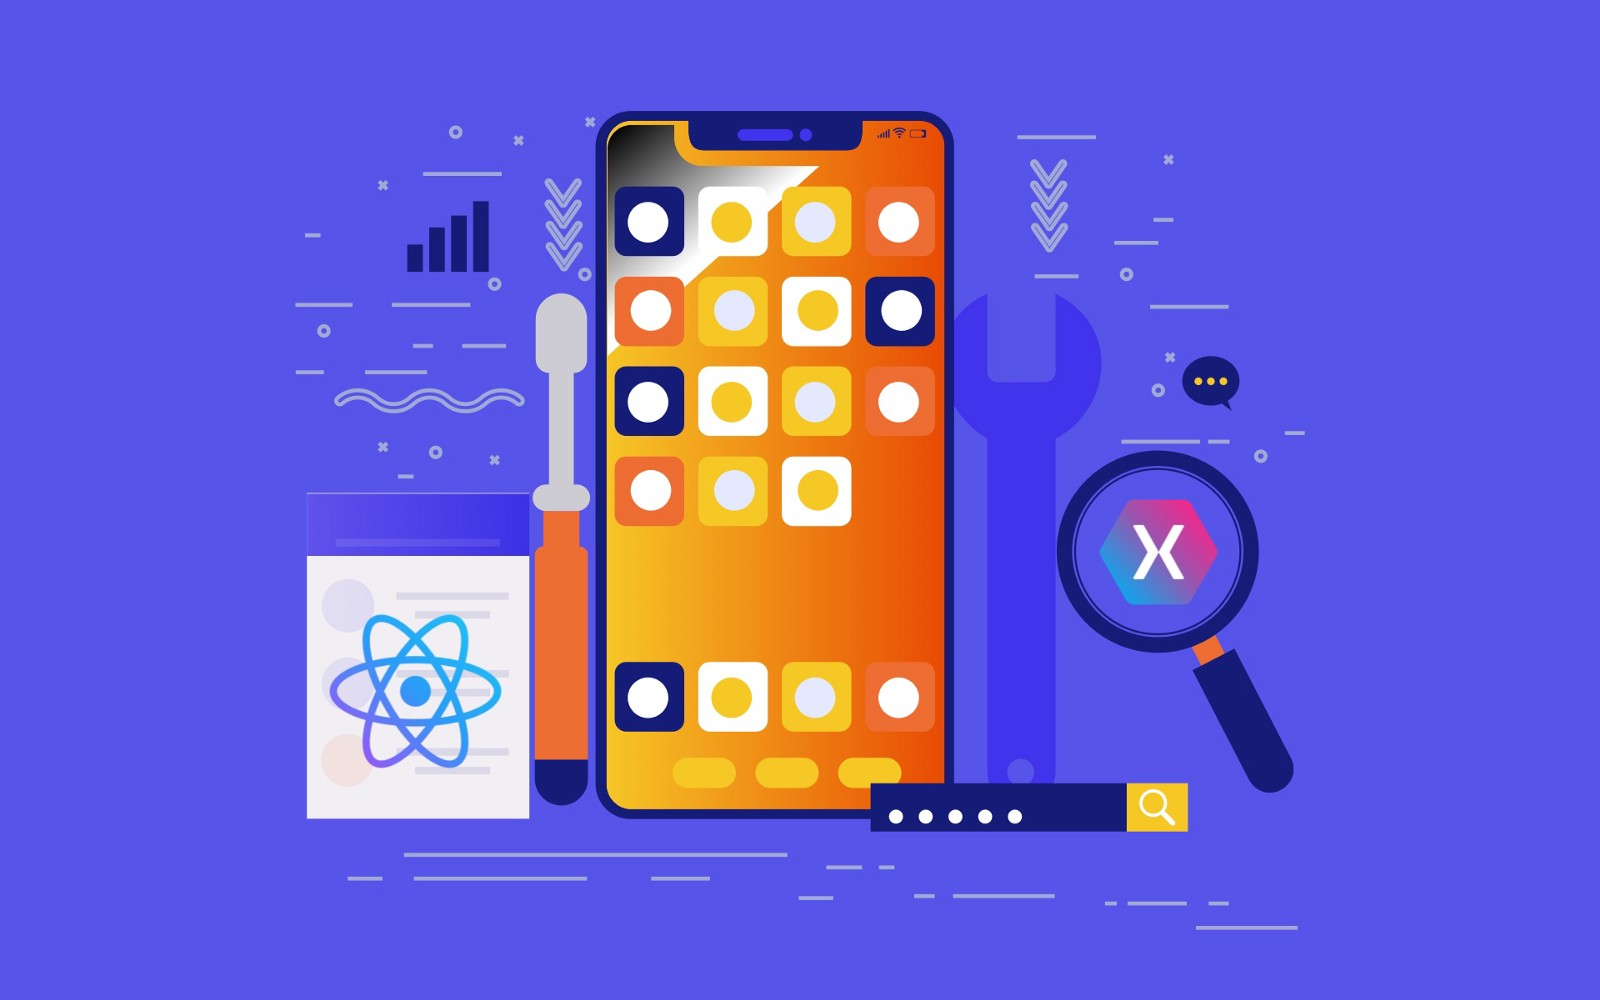 /hybrid-mobile-apps-in-2018-react-native-vs-xamarin-a03540f99005 feature image